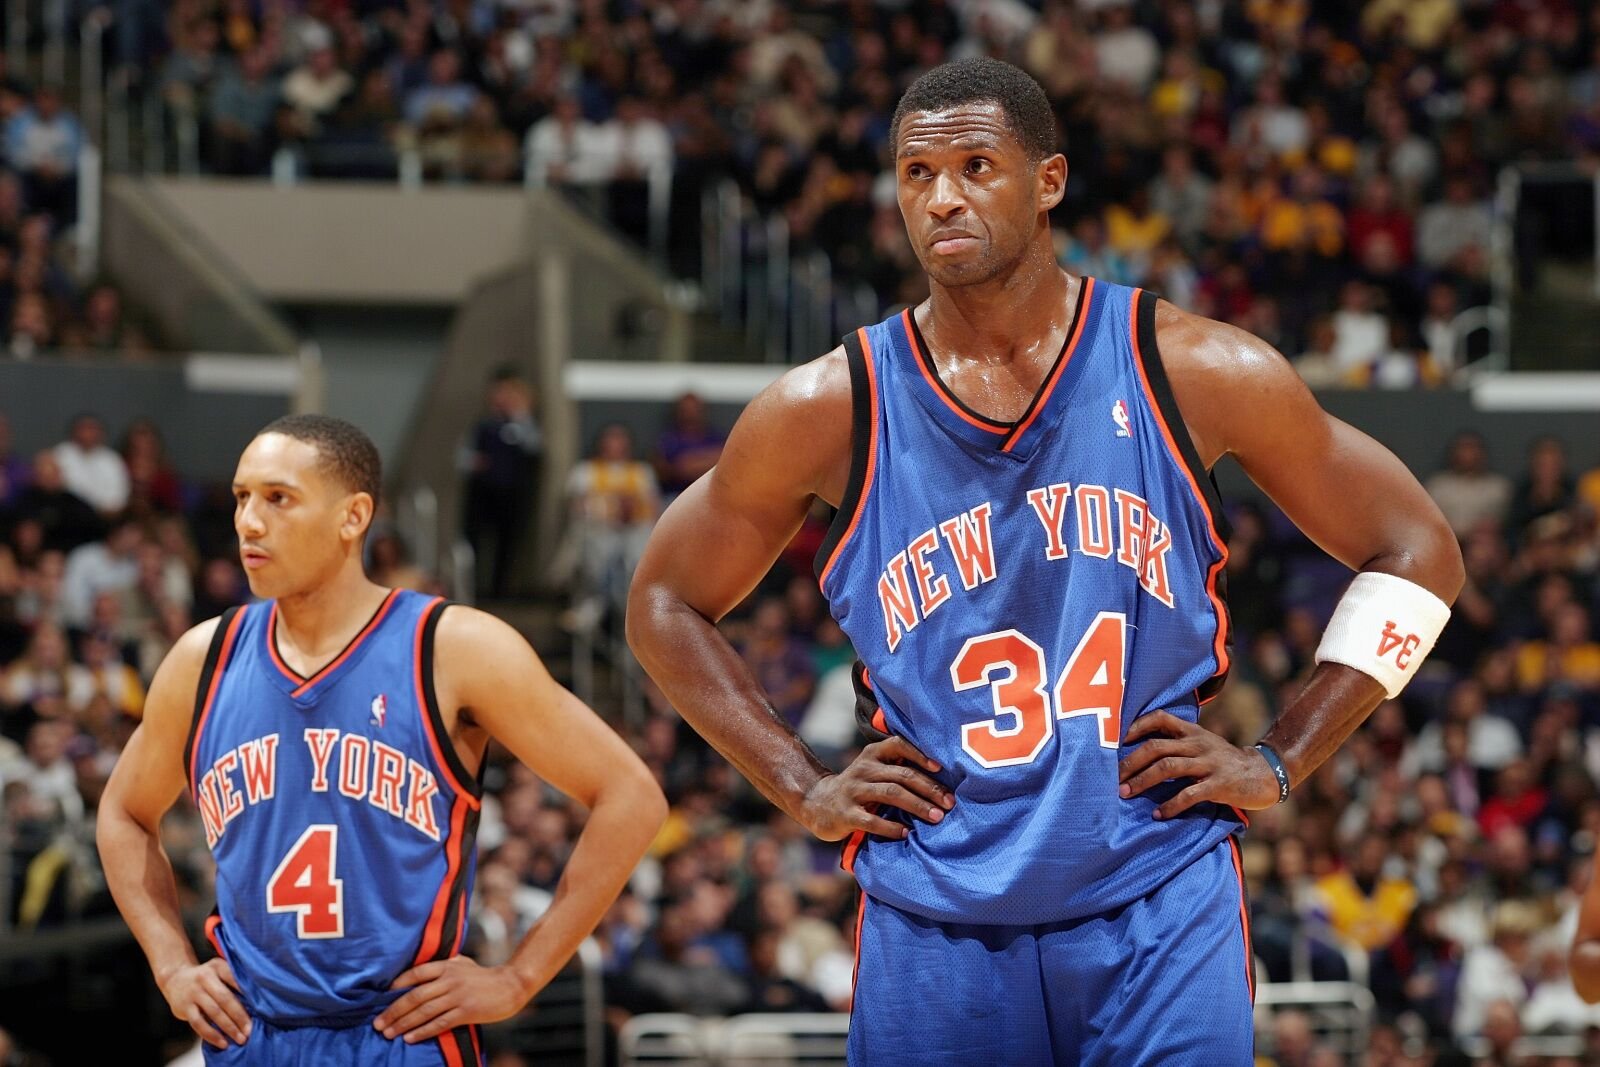 New York Knicks: The questionable trade that Antonio McDyess headlined